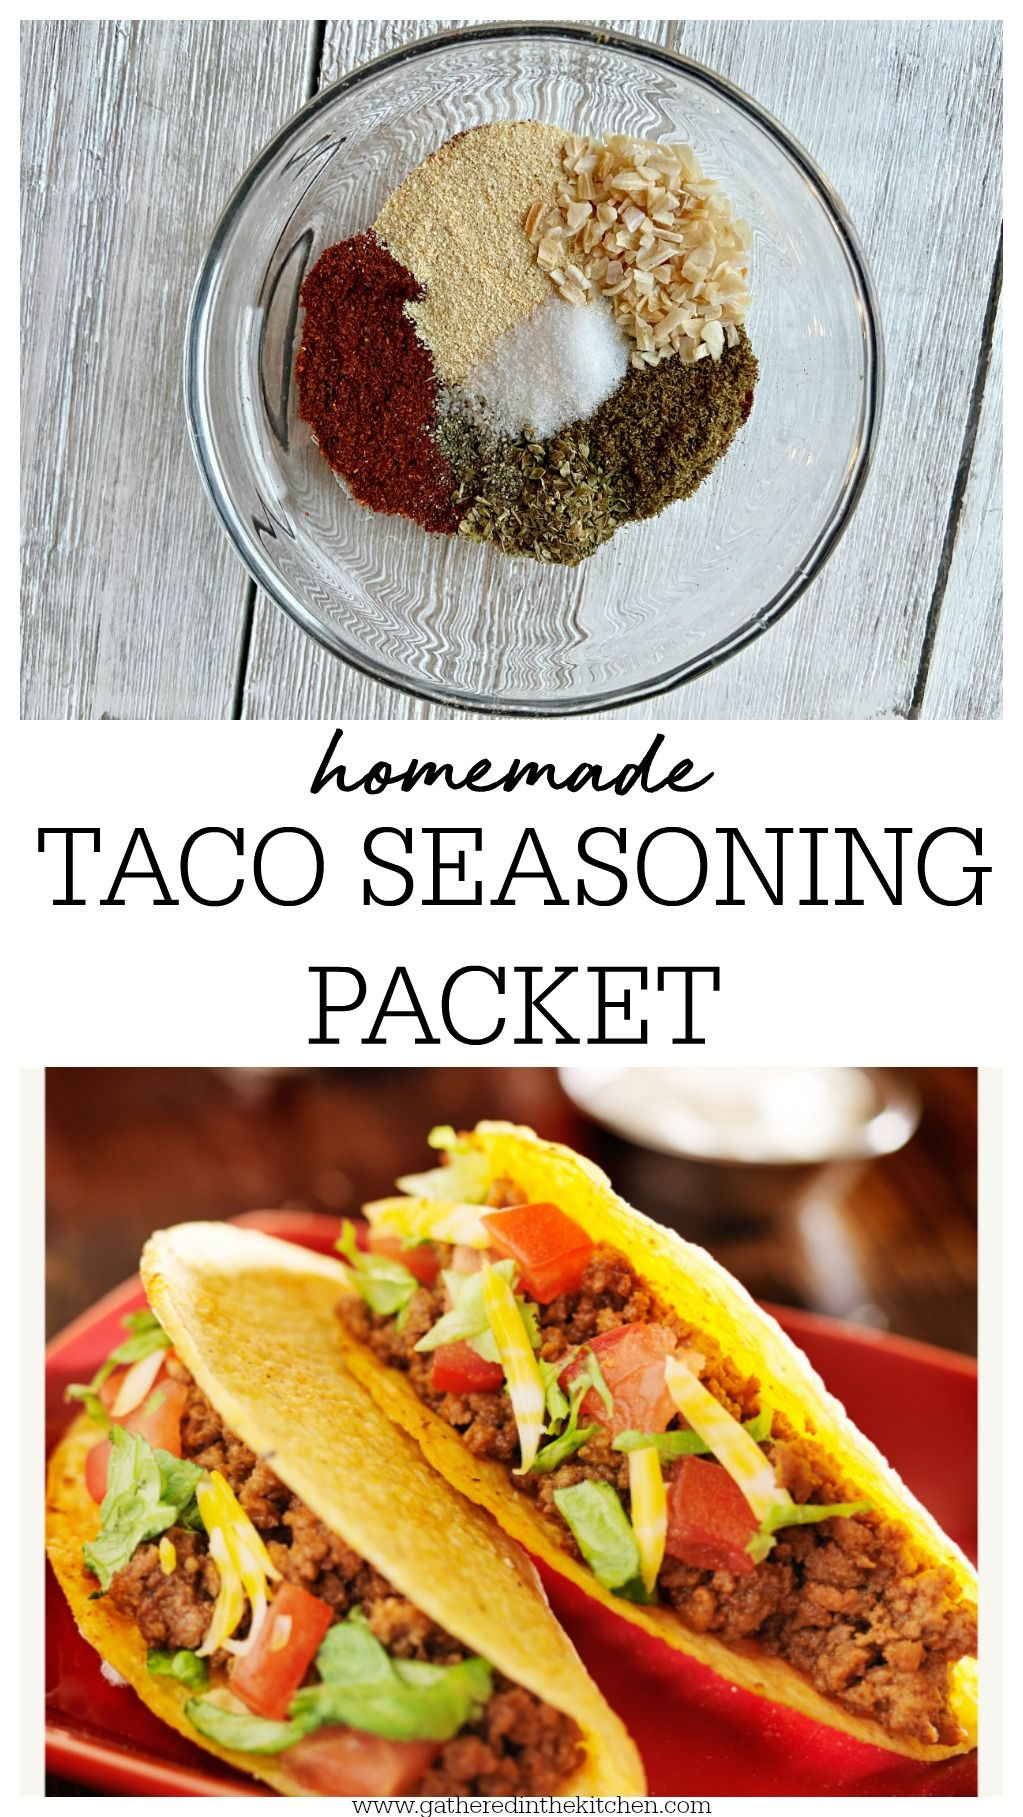 Homemade Taco Seasoning Packet Gathered In The Kitchen Recipe Taco Seasoning Packet Homemade Taco Seasoning Taco Seasoning